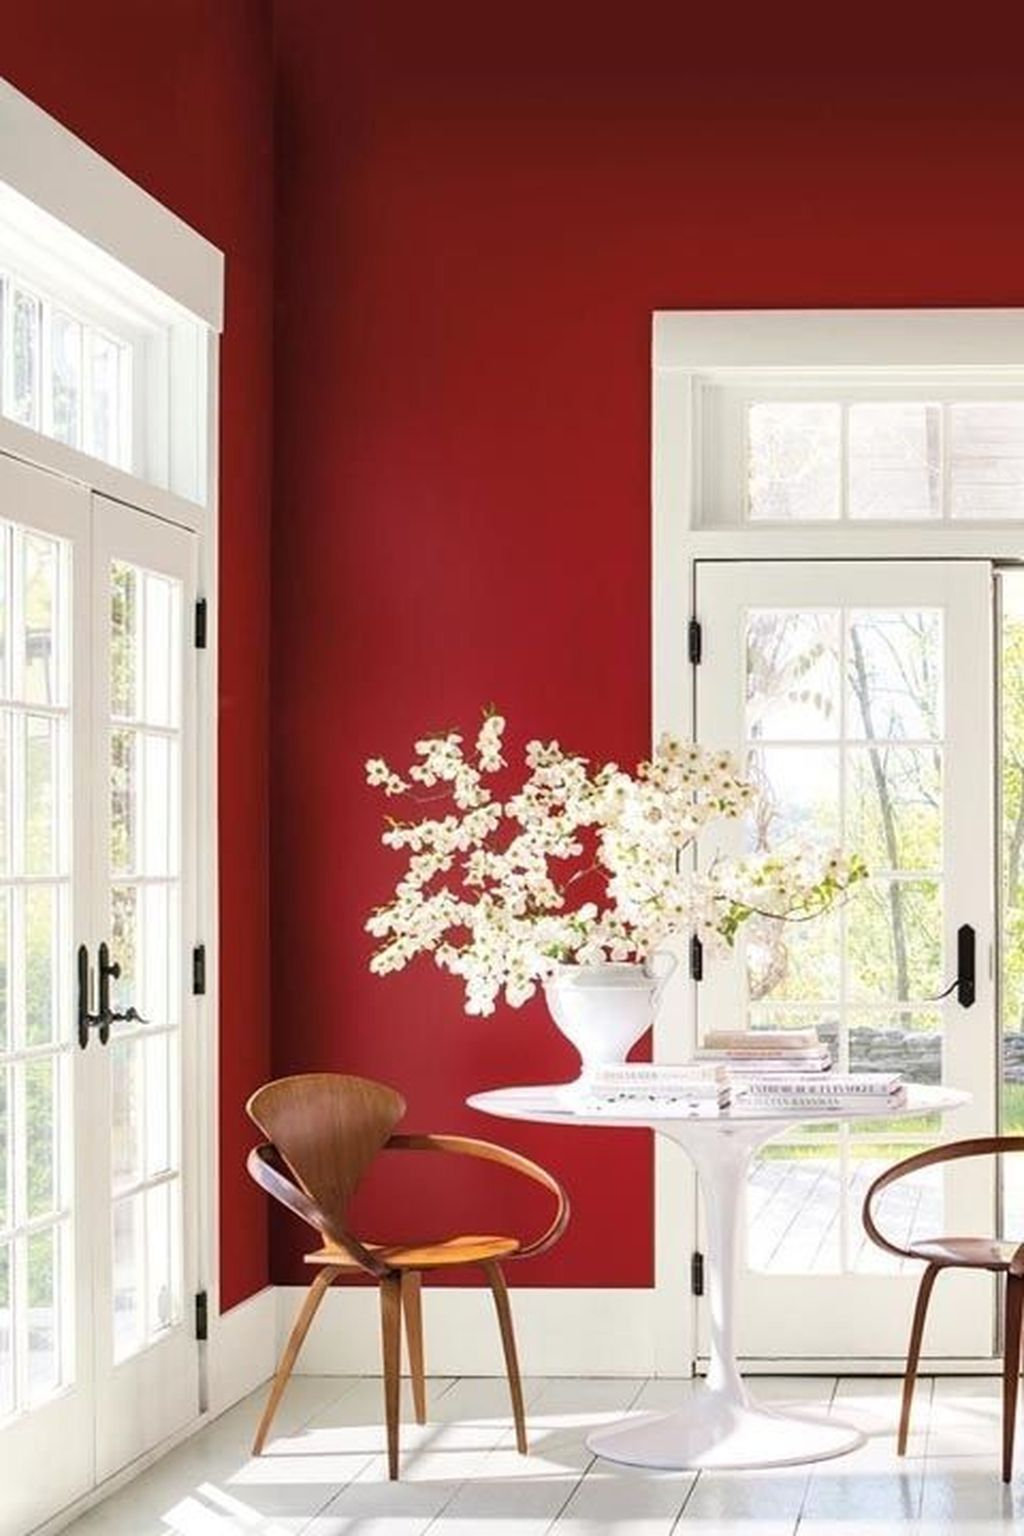 20 Astonishing Interior Designs With Red Details To Break The